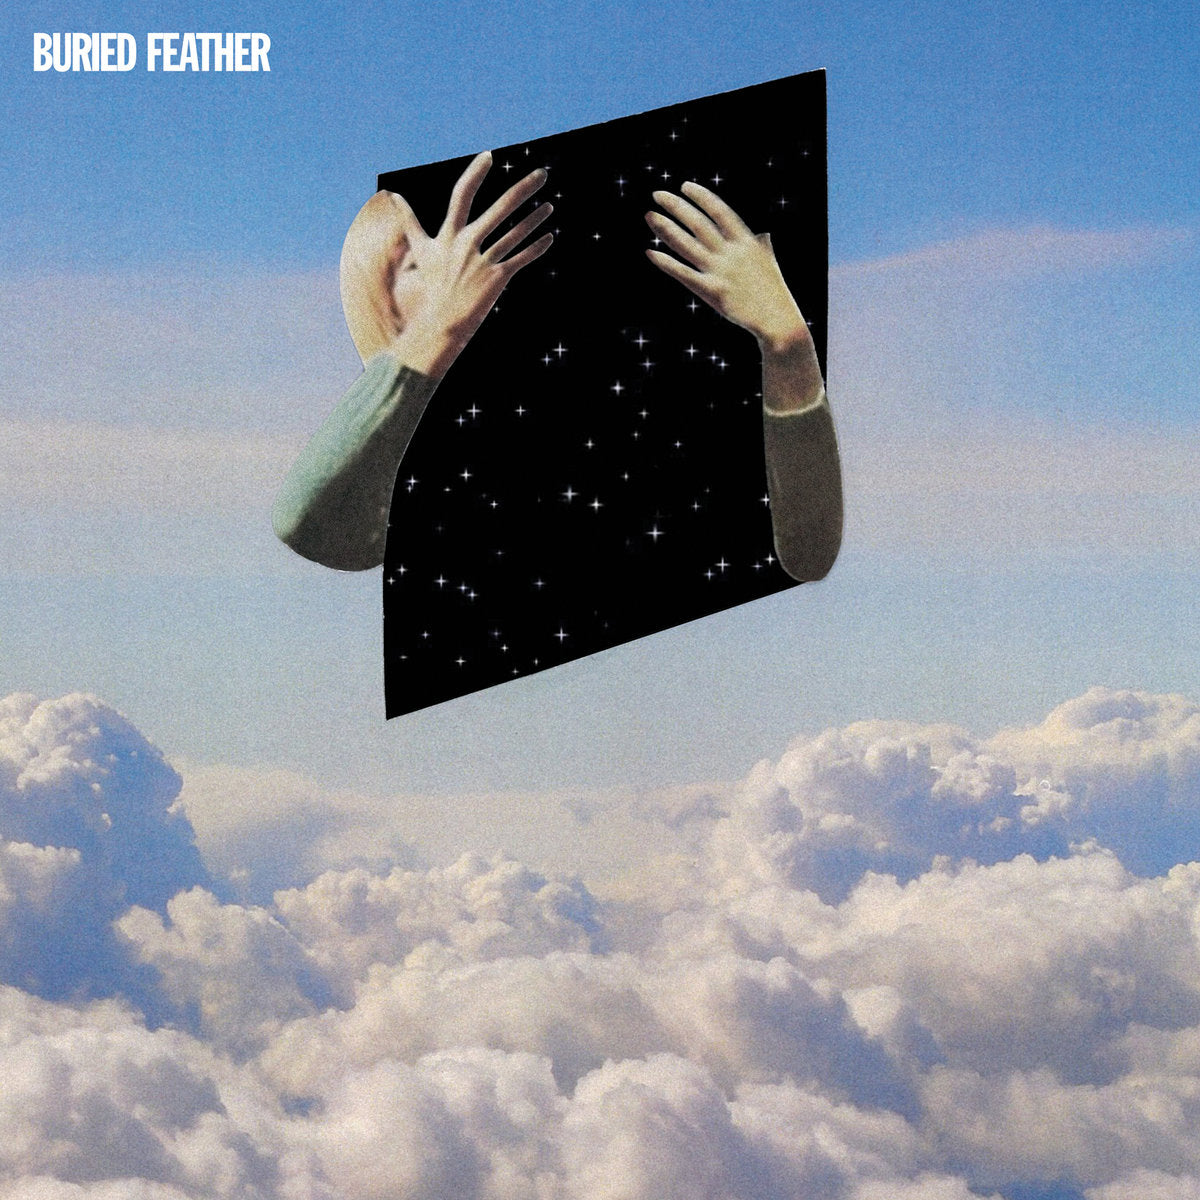 Buried Feather ‎– Buried Feather (Coloured Vinyl)